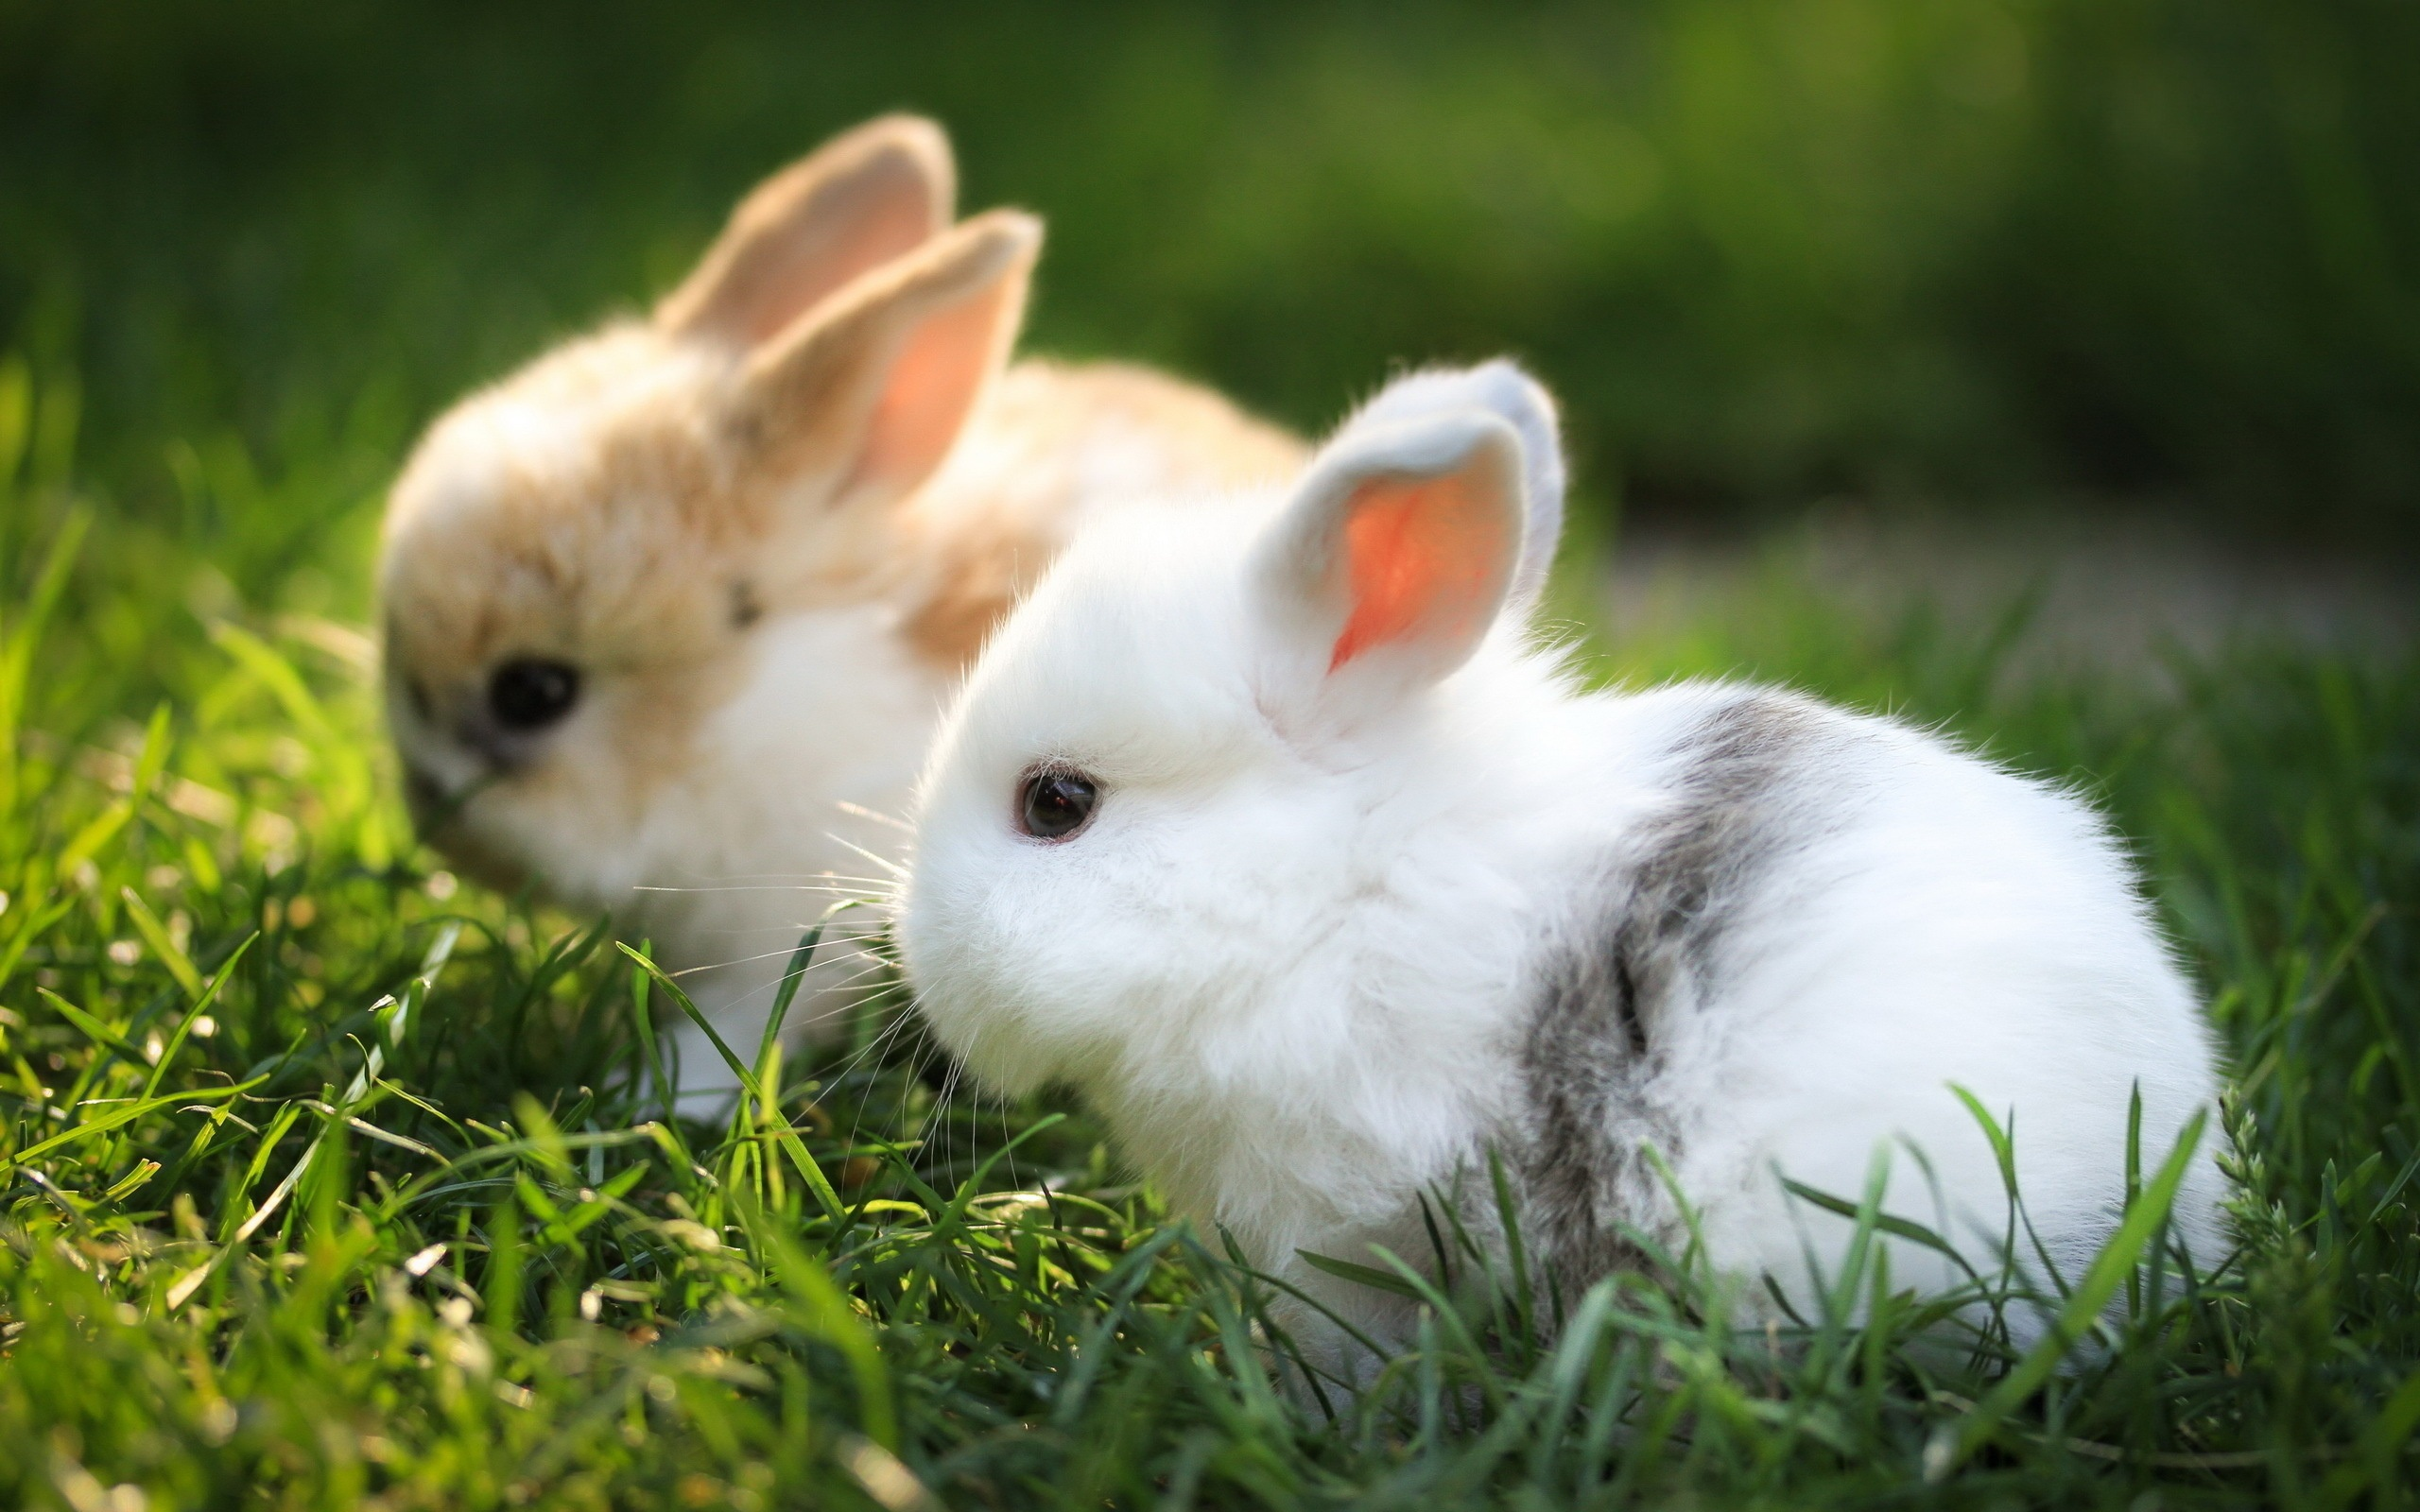 bunnies images